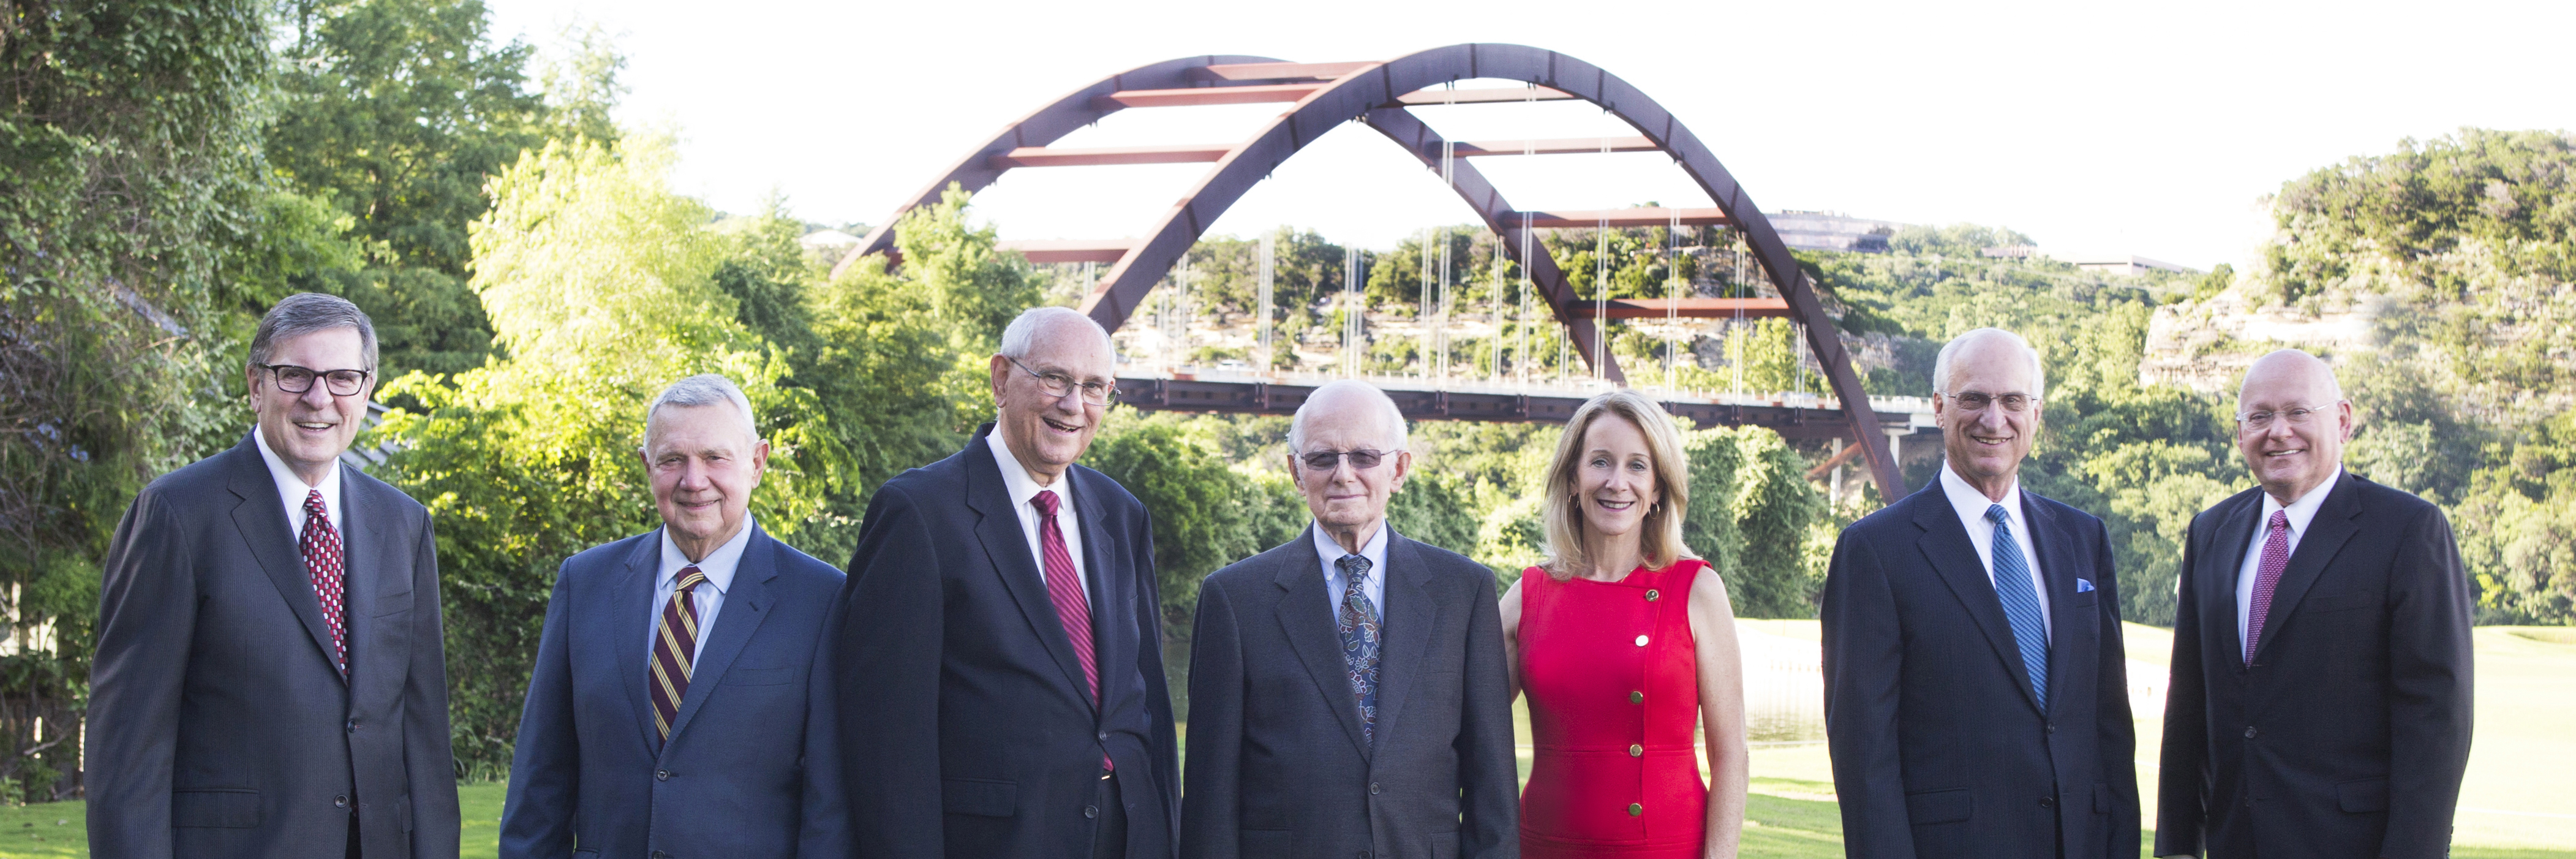 Mayors_cropped_full_bridge.jpg